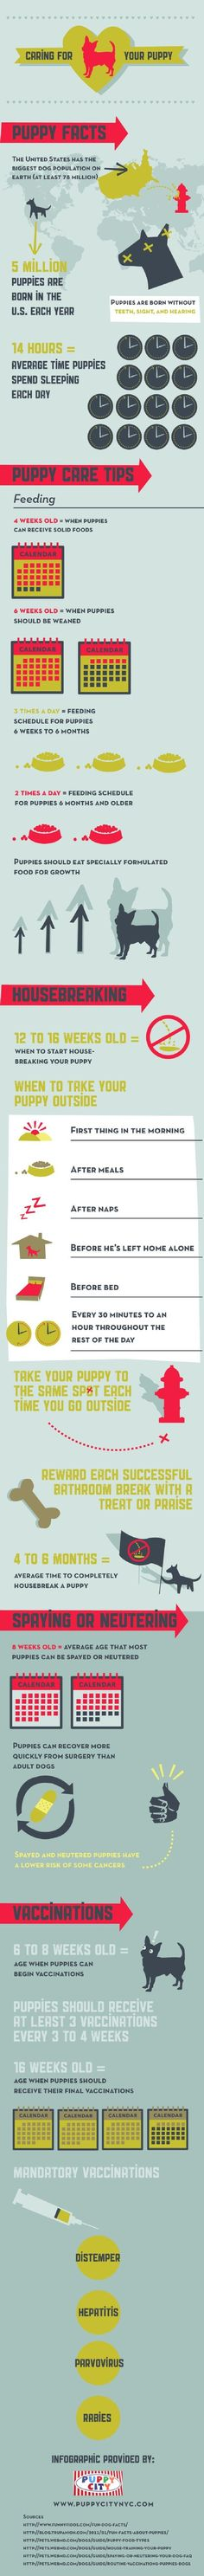 Did you know that the U.S. has the largest population of dogs of any country? There are at least 78 million dogs here! Explore this infographic for more fun puppy facts and tips for caring for your new Maltese puppy.